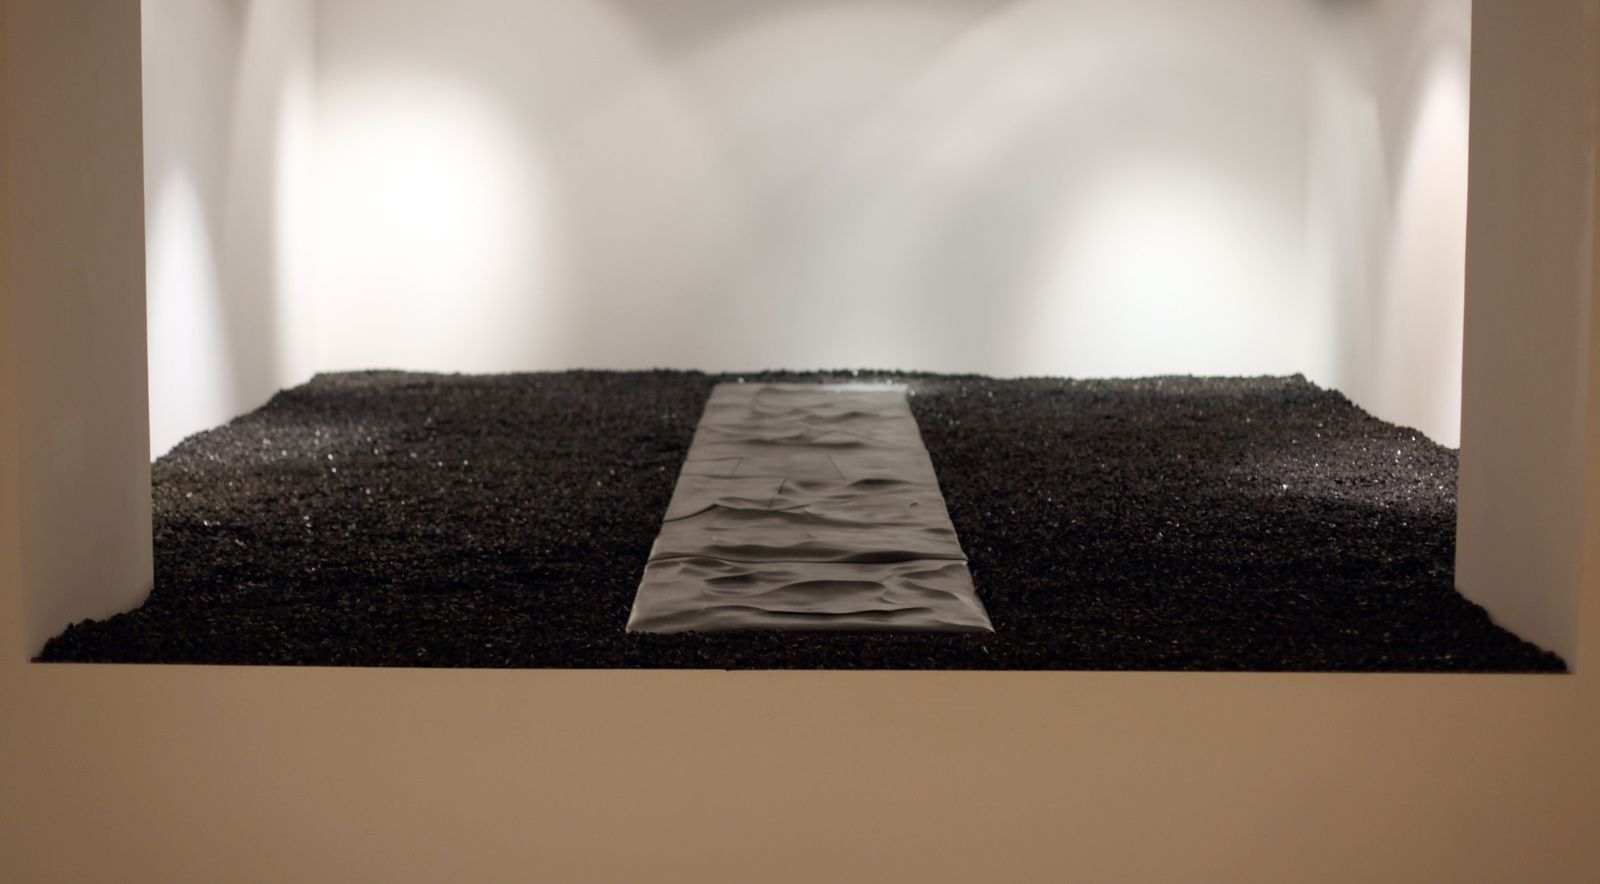 """Paysage d'eau"", 1982 de Pablo Reinoso - Courtesy Reinoso Studio © Photo Éric Simon"